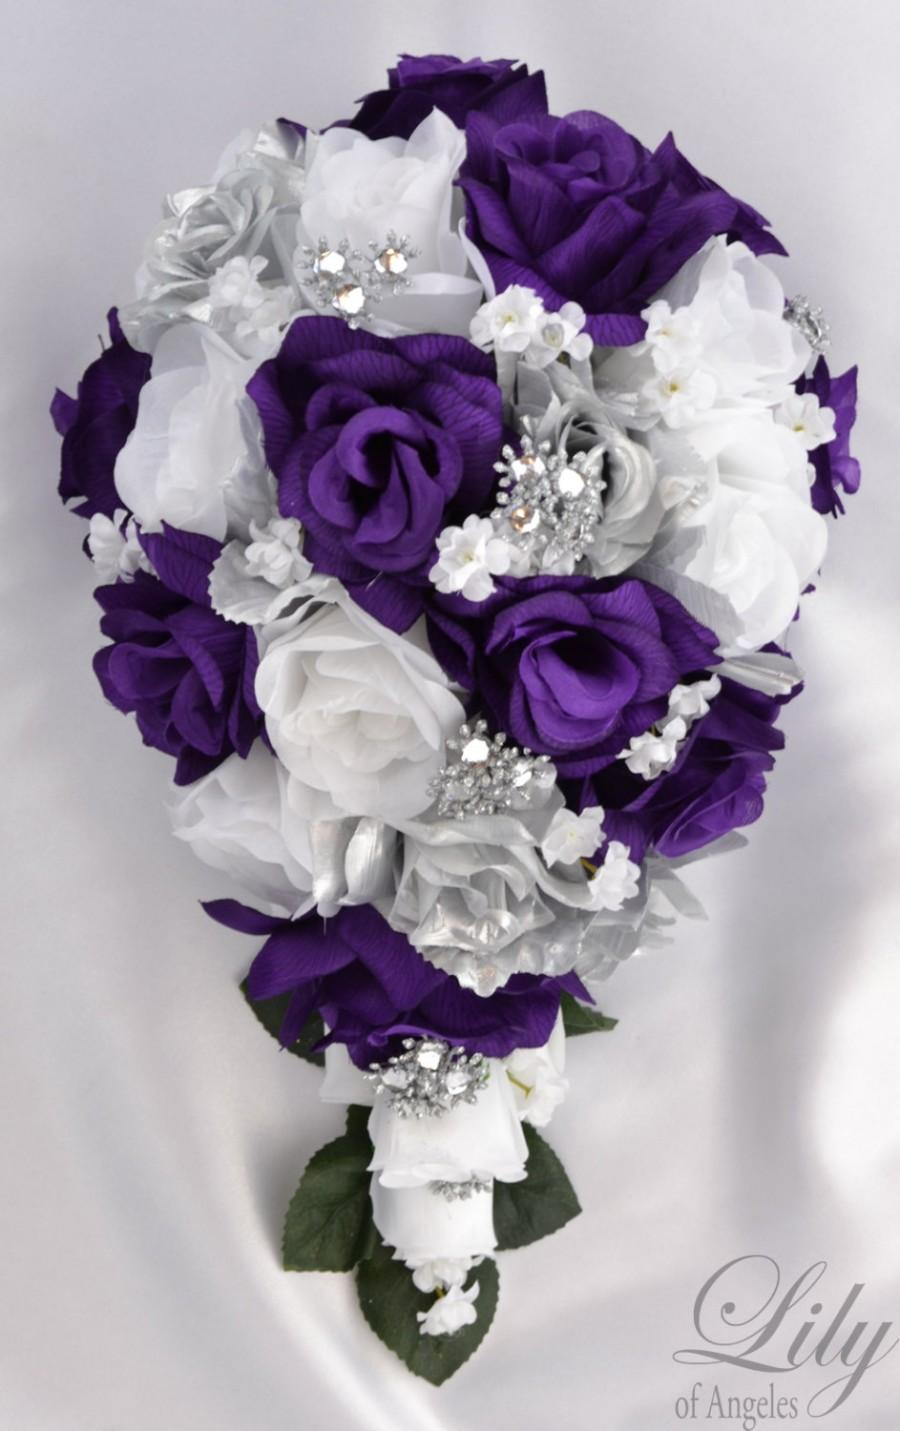 17 Piece Package Bridal Bouquet Wedding Bouquets Silk Flowers Bride